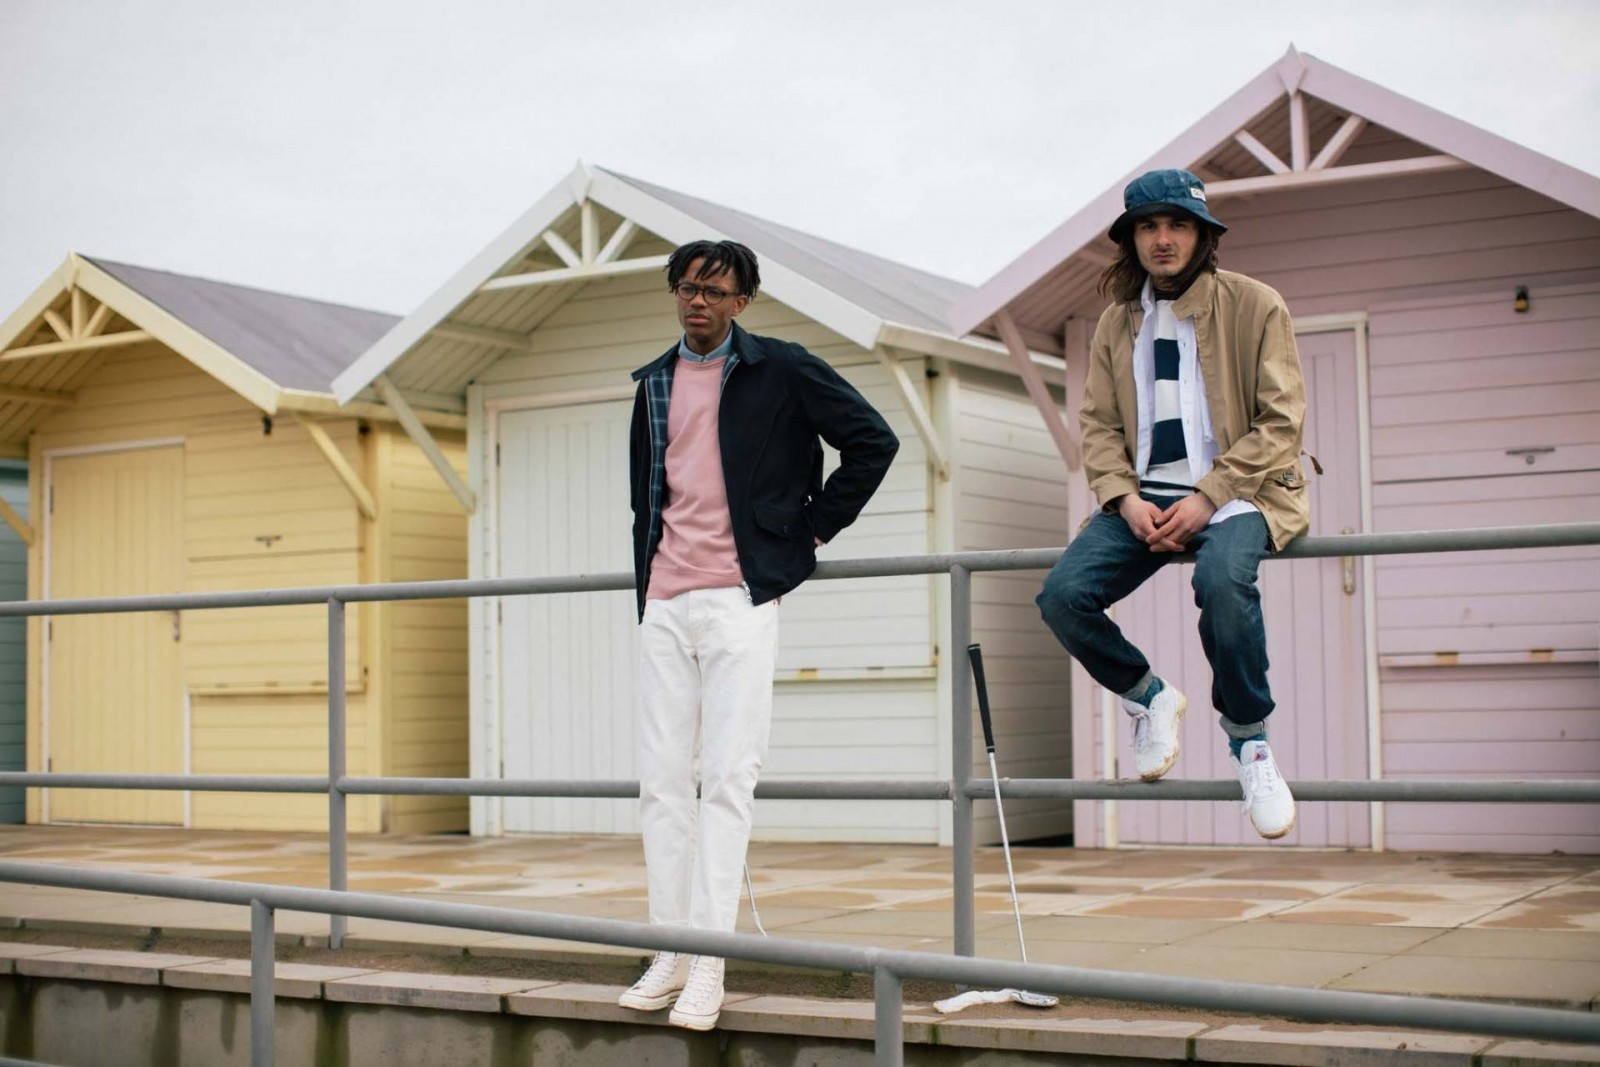 heritage menswear from Grenfell